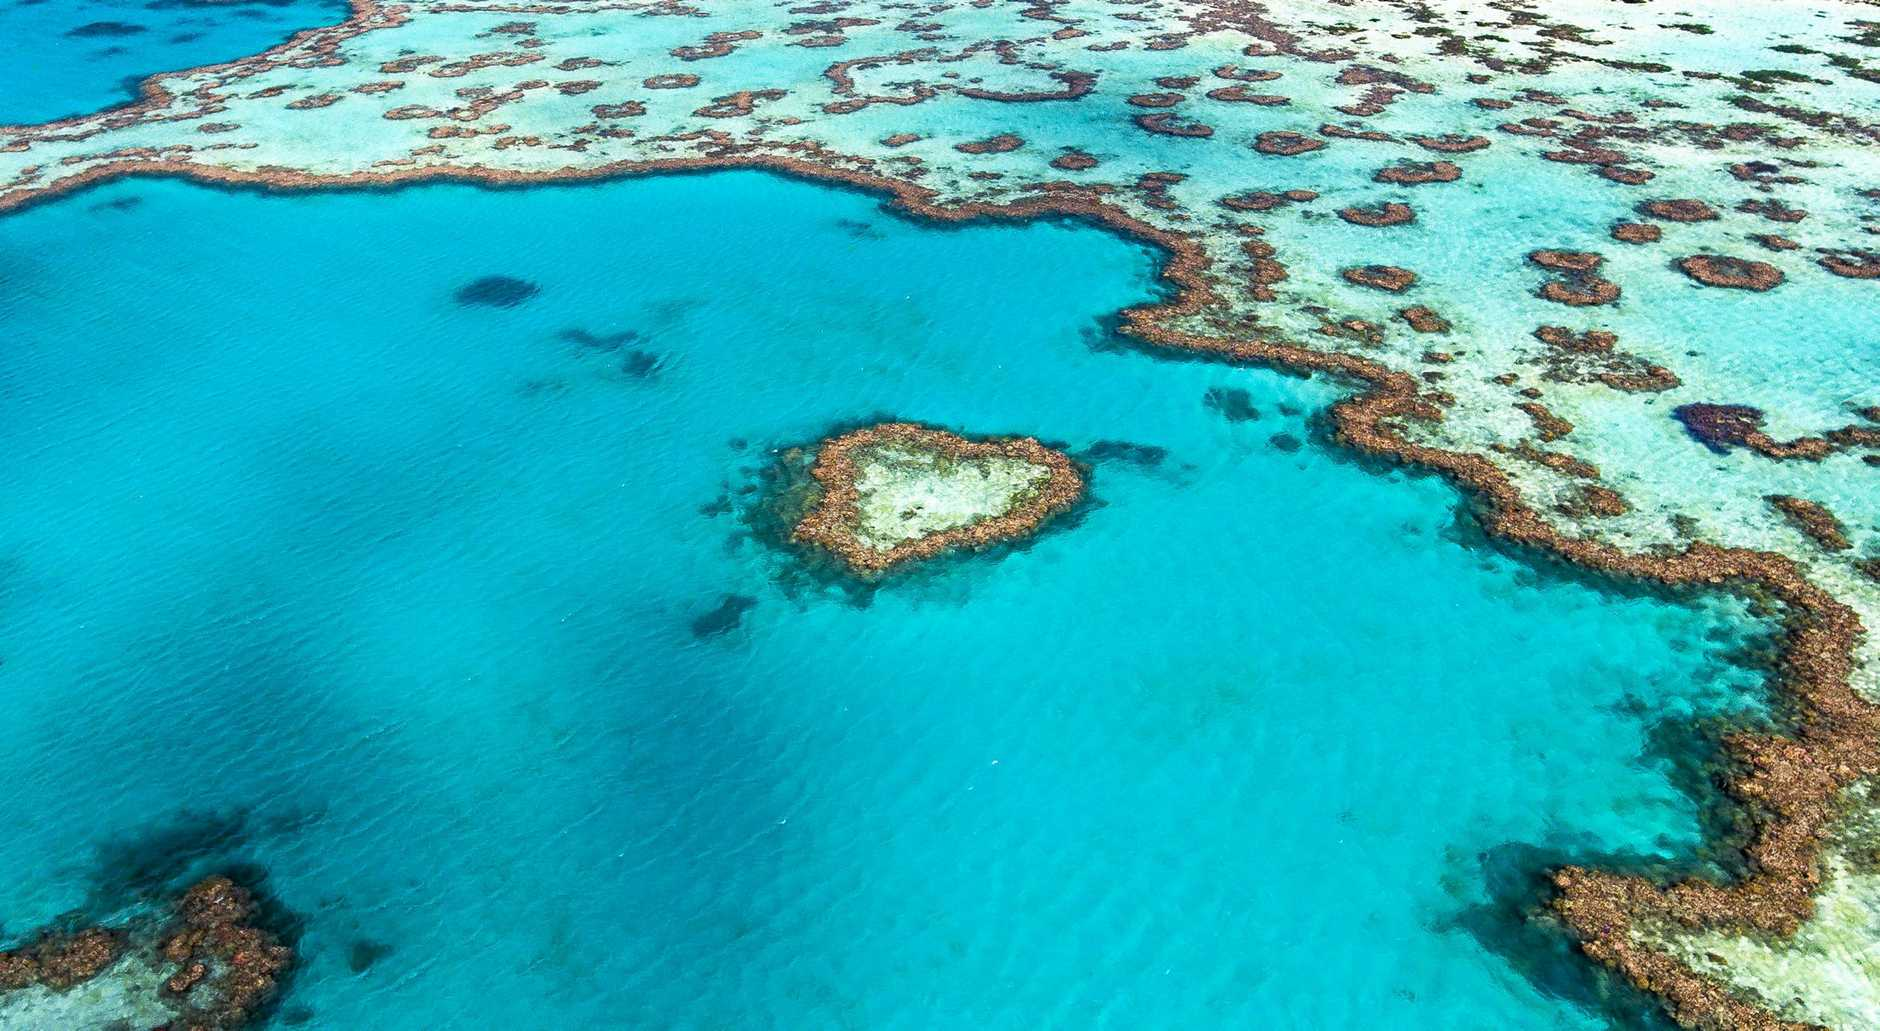 Aerial view of Hardy Reef, home to the Heart Reef, in the Great Barrier Reef.These images were taken on 20 June 2017 by a drone to assess if the Heart Reef has been bleached.